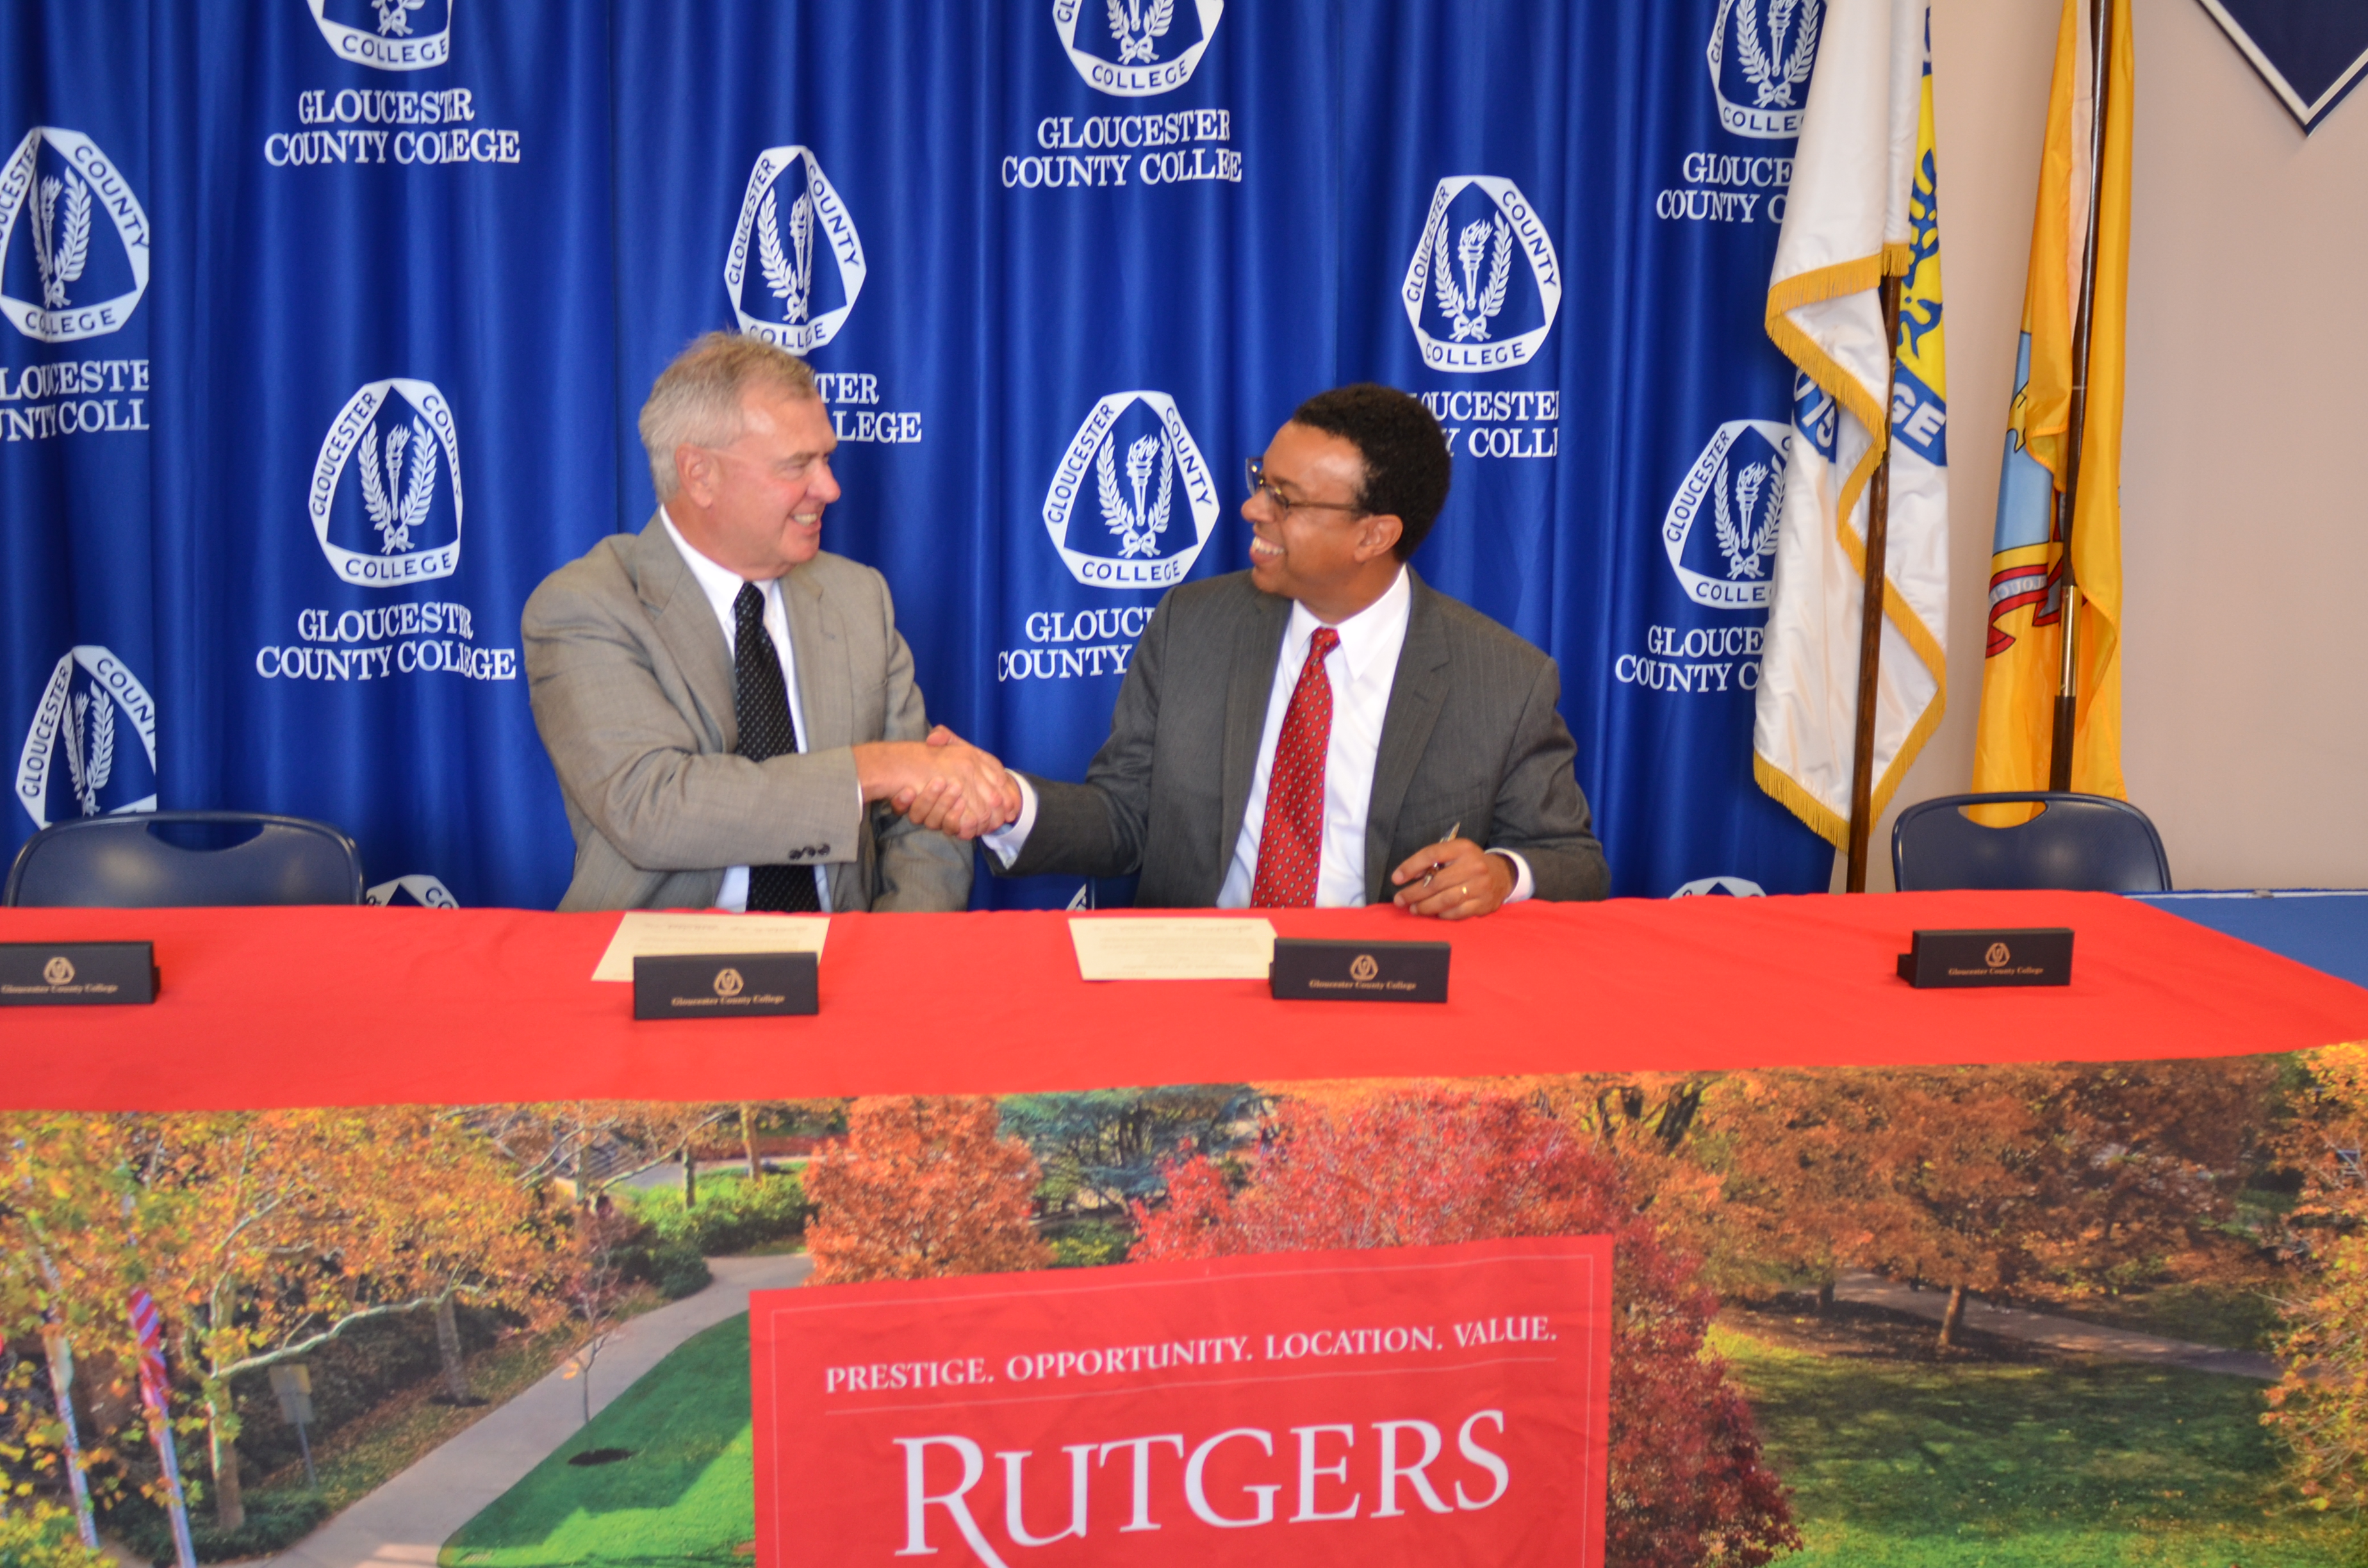 Rutgers–Camden Chancellor Wendell Pritchett (right) with Fred Keating 8f61e151d